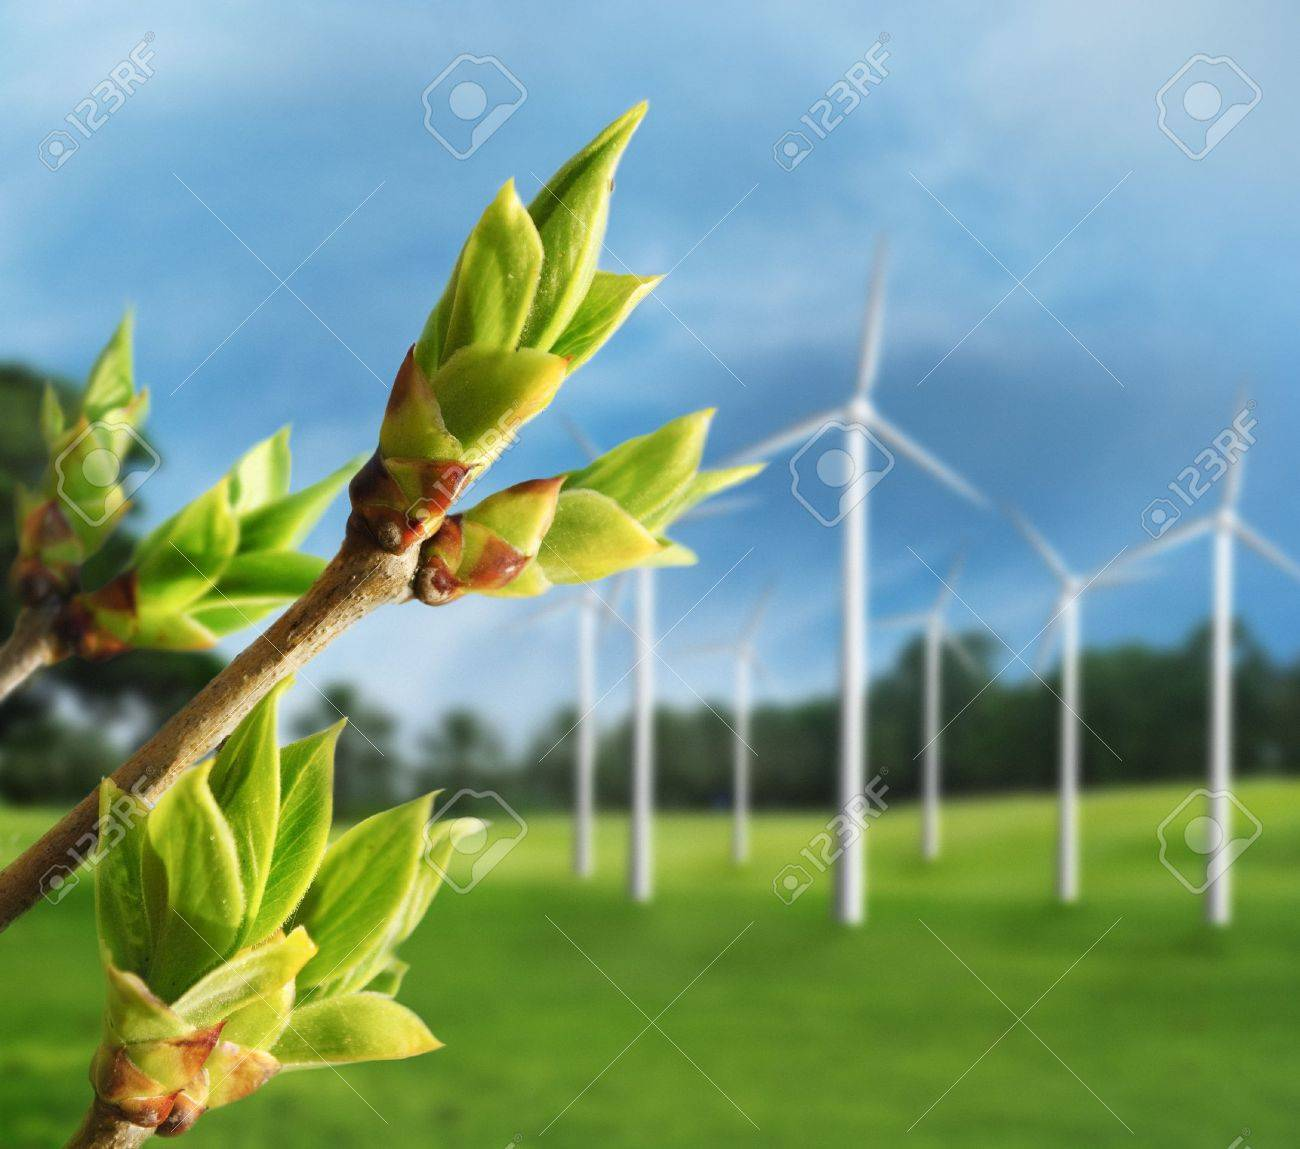 Ecology concept. Renewable energy from wind turbines. - 12803262